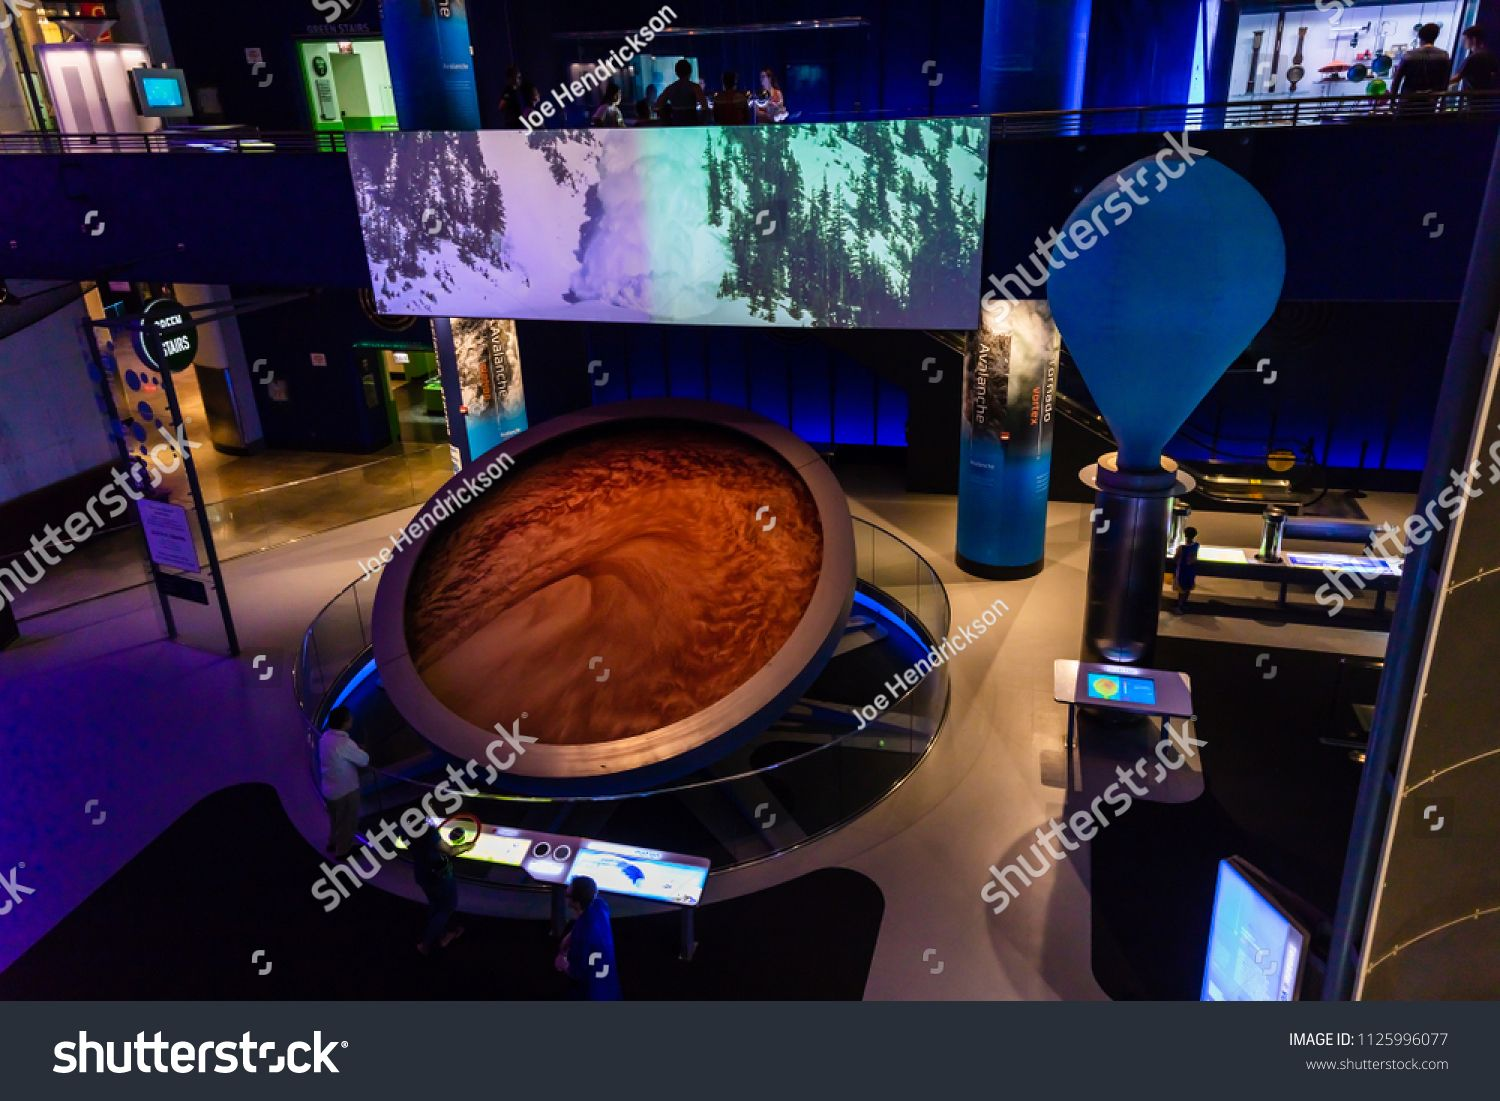 Chicago Il Usa June 24 2018 The Museum Of Science And Industry Features A Science Storm Exhibit That Has An Example Chicago Il Photo Editing Stock Photos